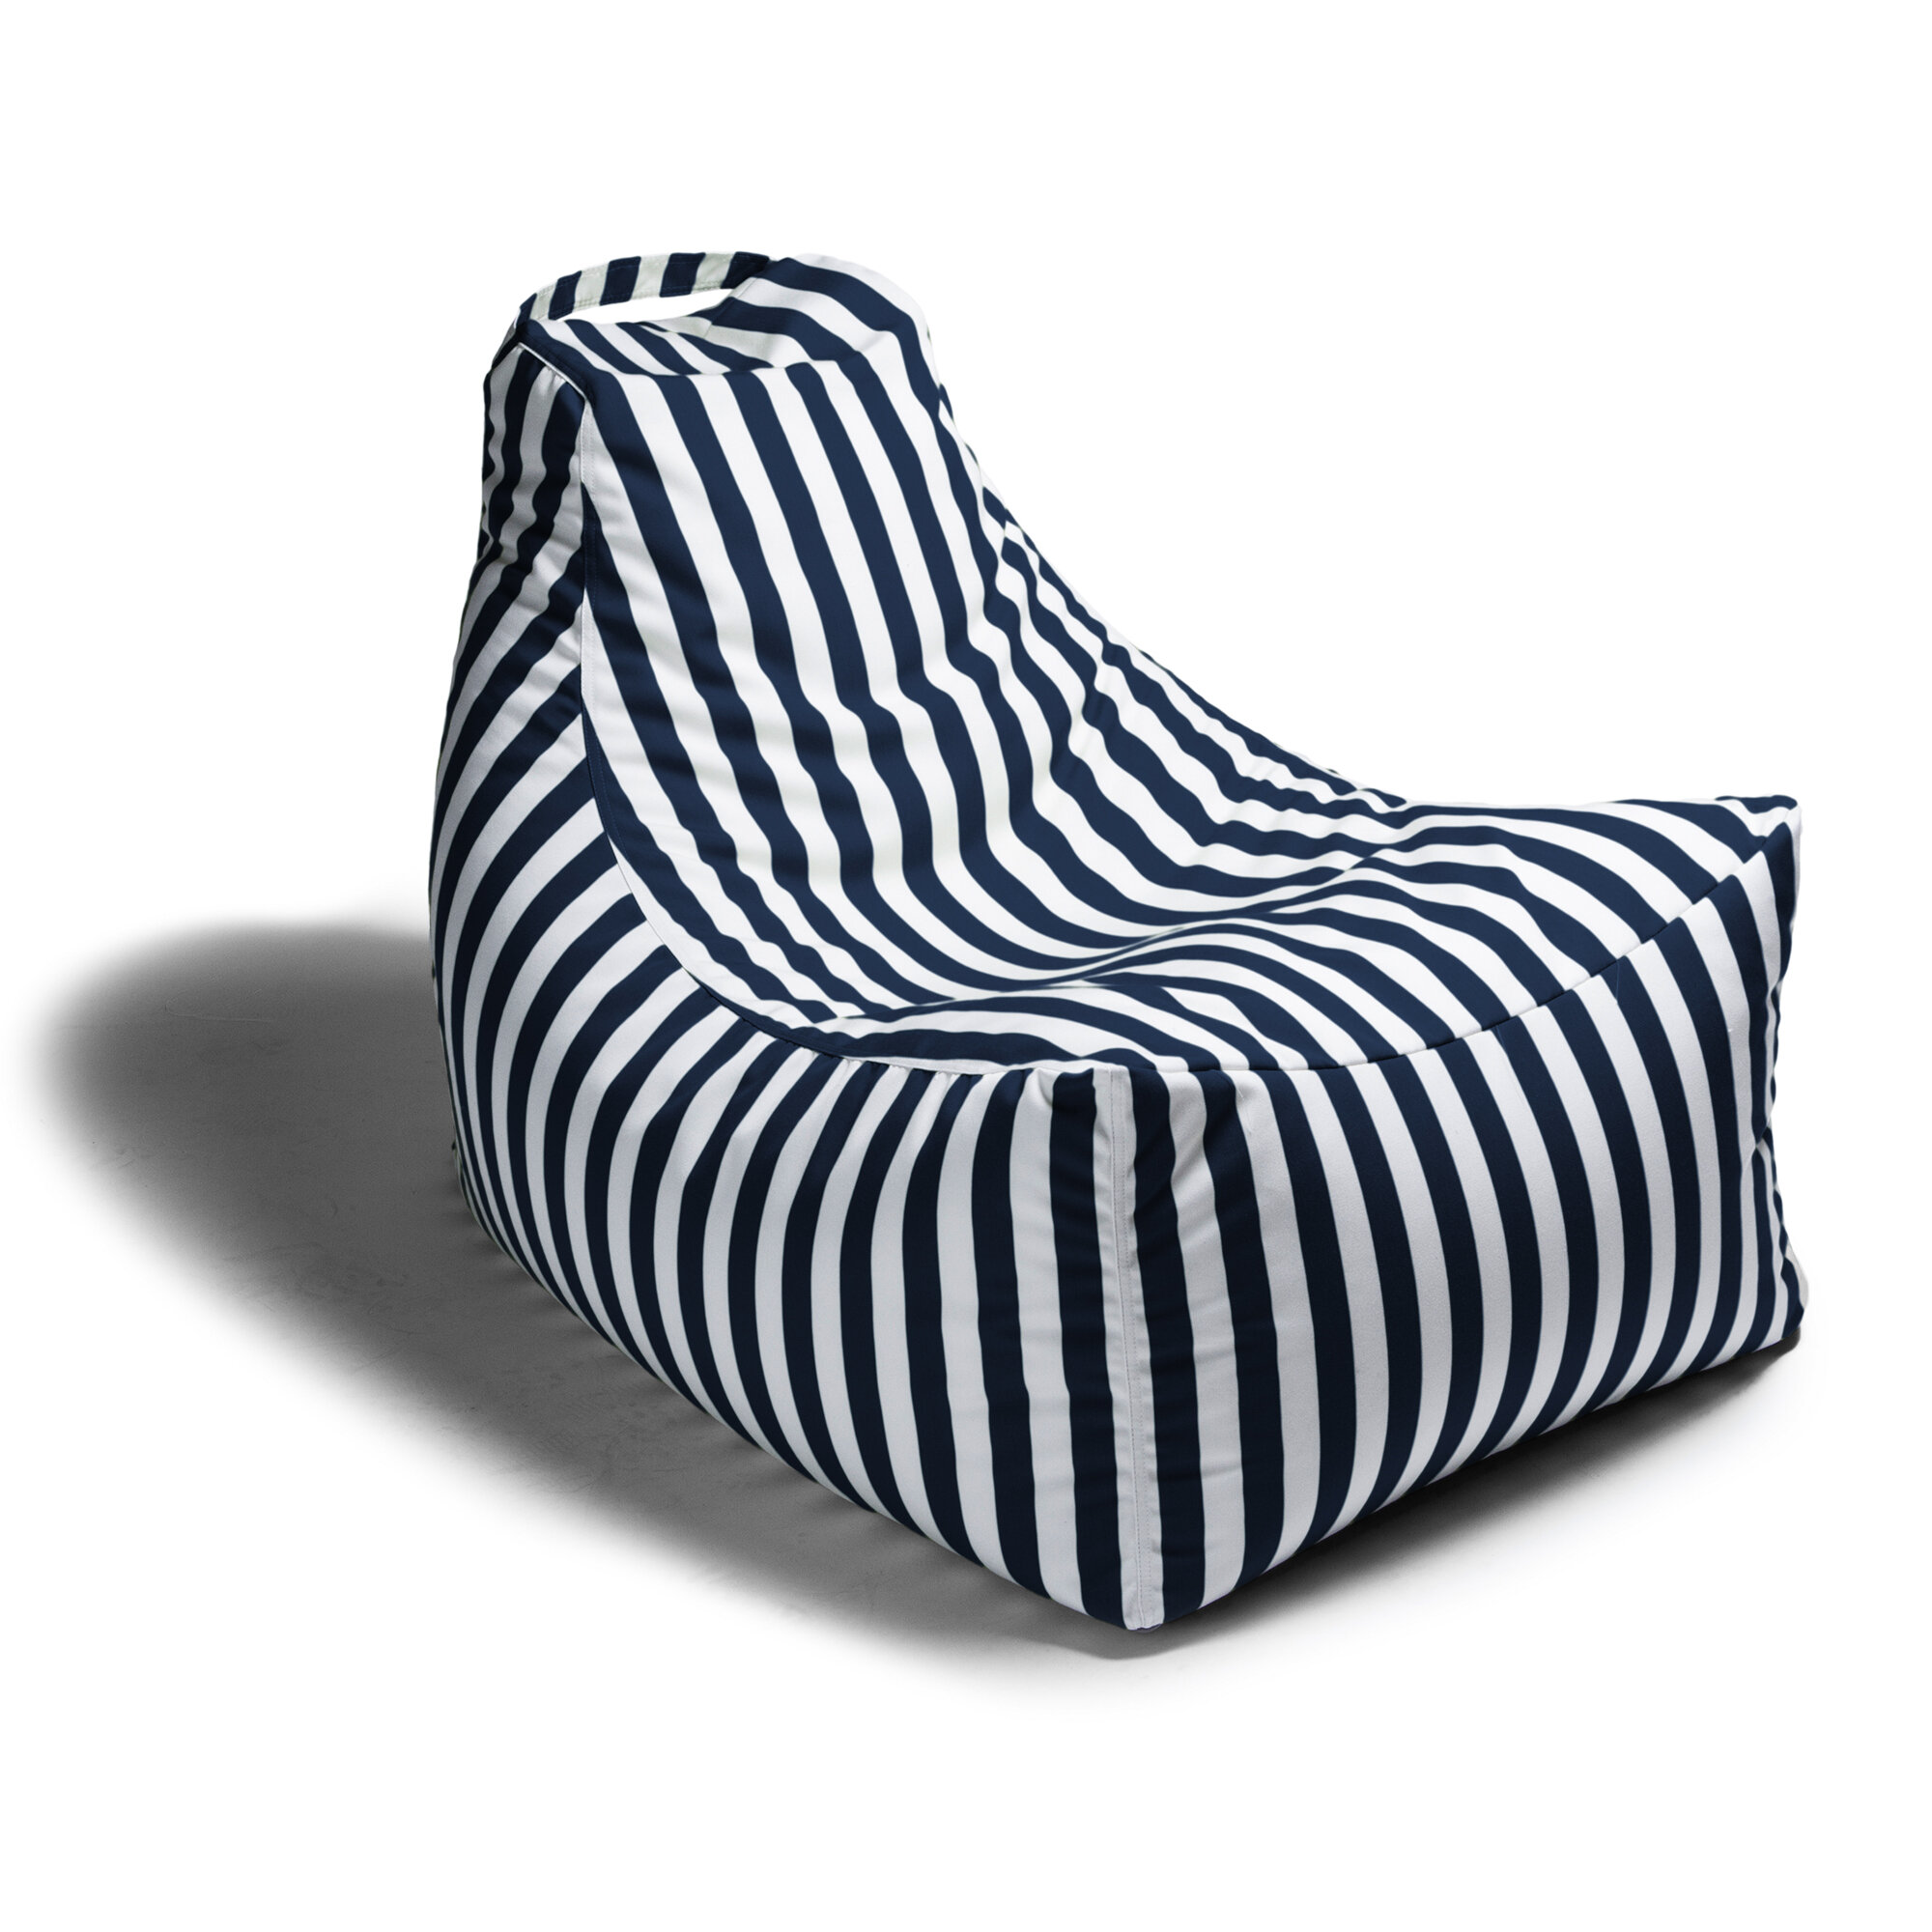 sc 1 st  AllModern & Outdoor Striped Bean Bag Lounger u0026 Reviews | AllModern